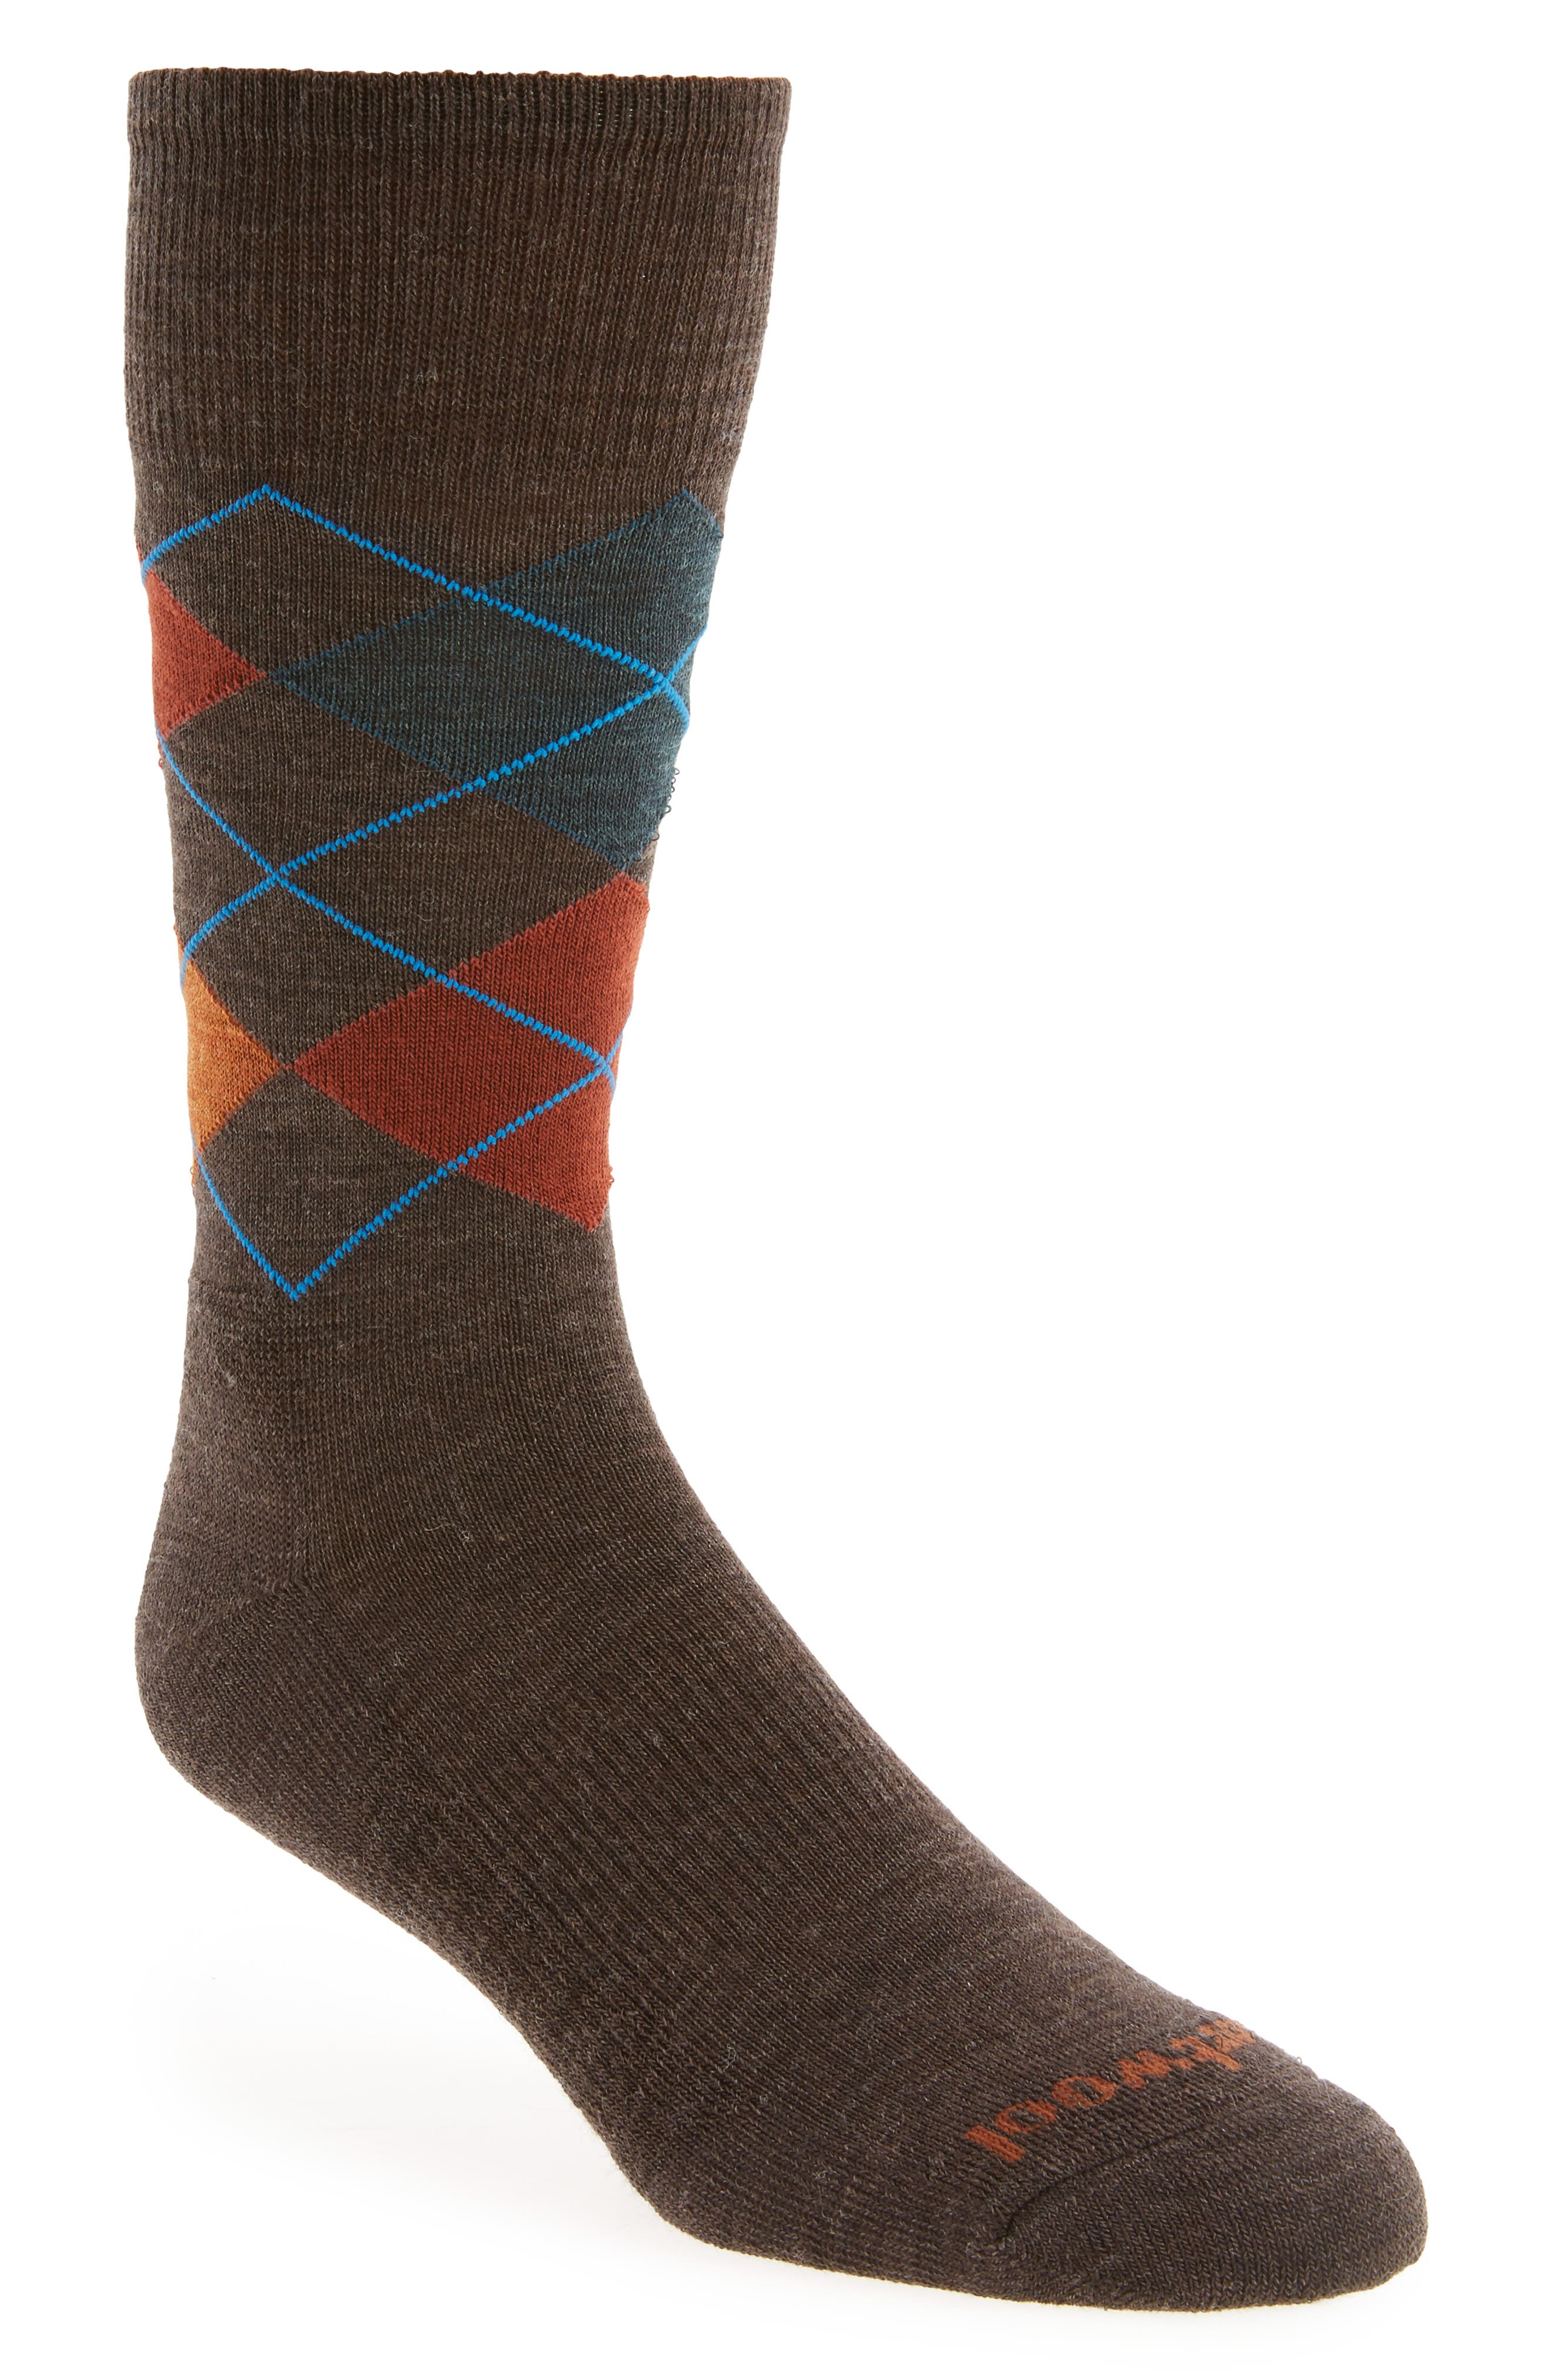 Smartwool Diamond Jim Argyle Wool Blend Socks